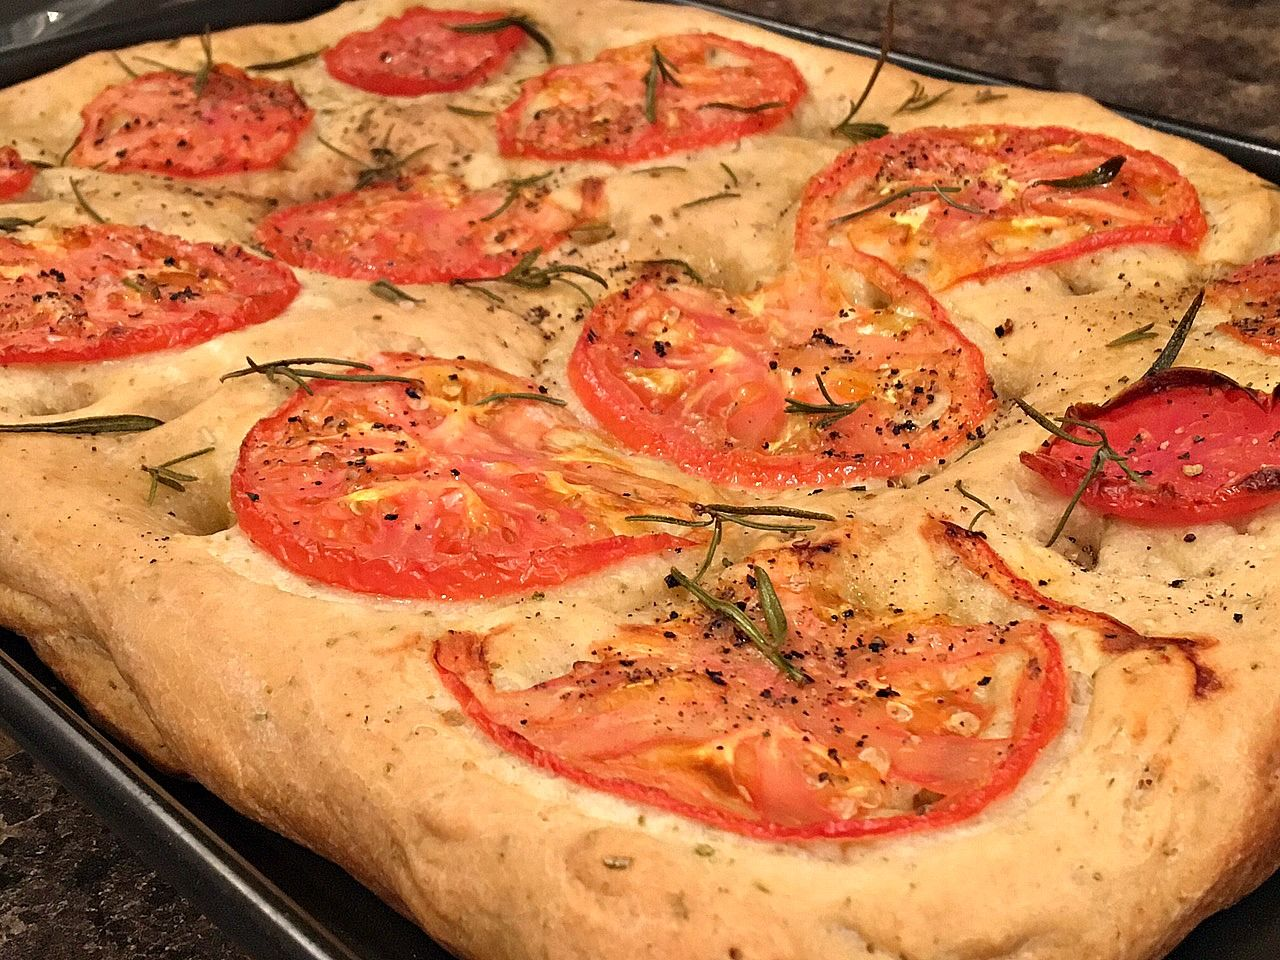 TOMATO ROSEMARY FOCACCIA - This tasty Italian flatbread is a snap to make. So for anyone who hasn't made bread before, you should give it a try! VIDEO https://www.youtube.com/watch?v=ZhSLnooSgeQ For ingredient amounts and much more, visit http://clubfoody.com/recipe/tomato-rosemary-focaccia/